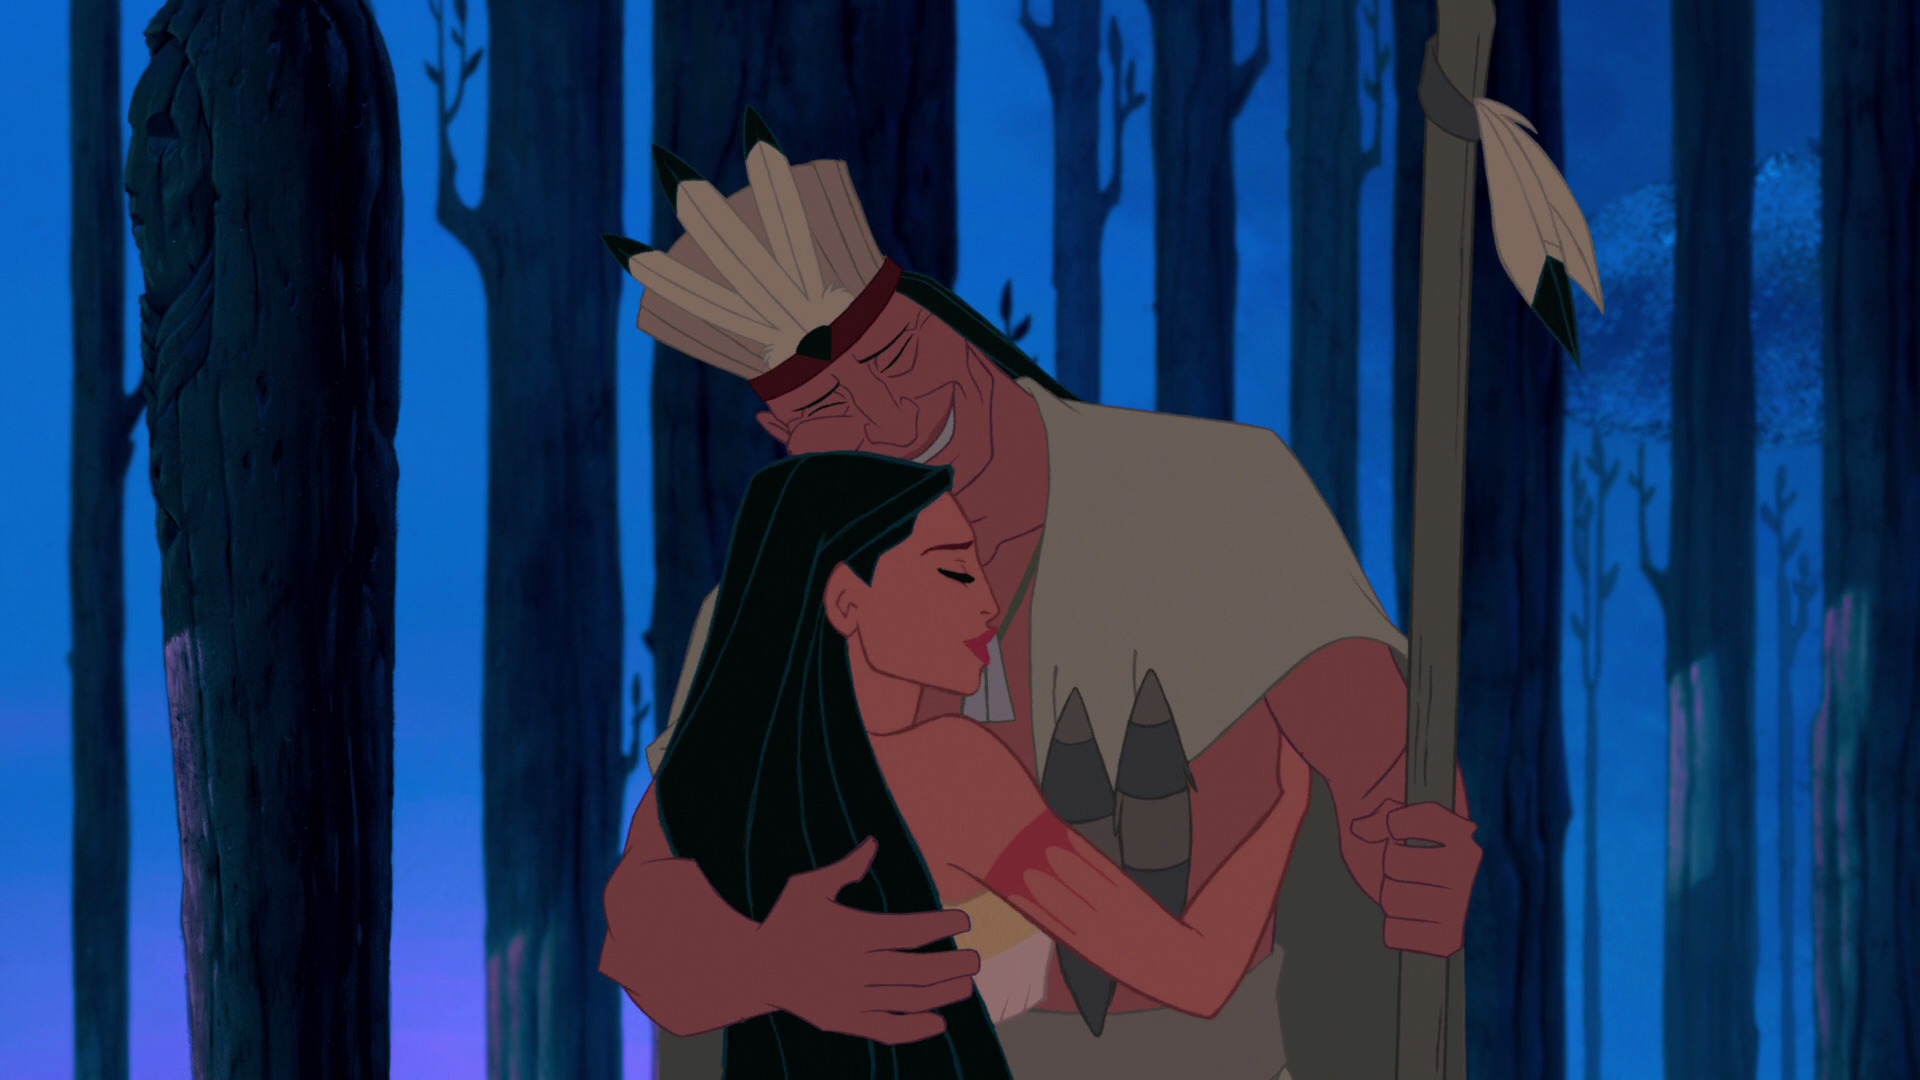 You can see Powhatan wears a feather headdress which represents his role as the chief/leader of his tribe. Pocahontas and her father Powhatan. Disney, 1995.